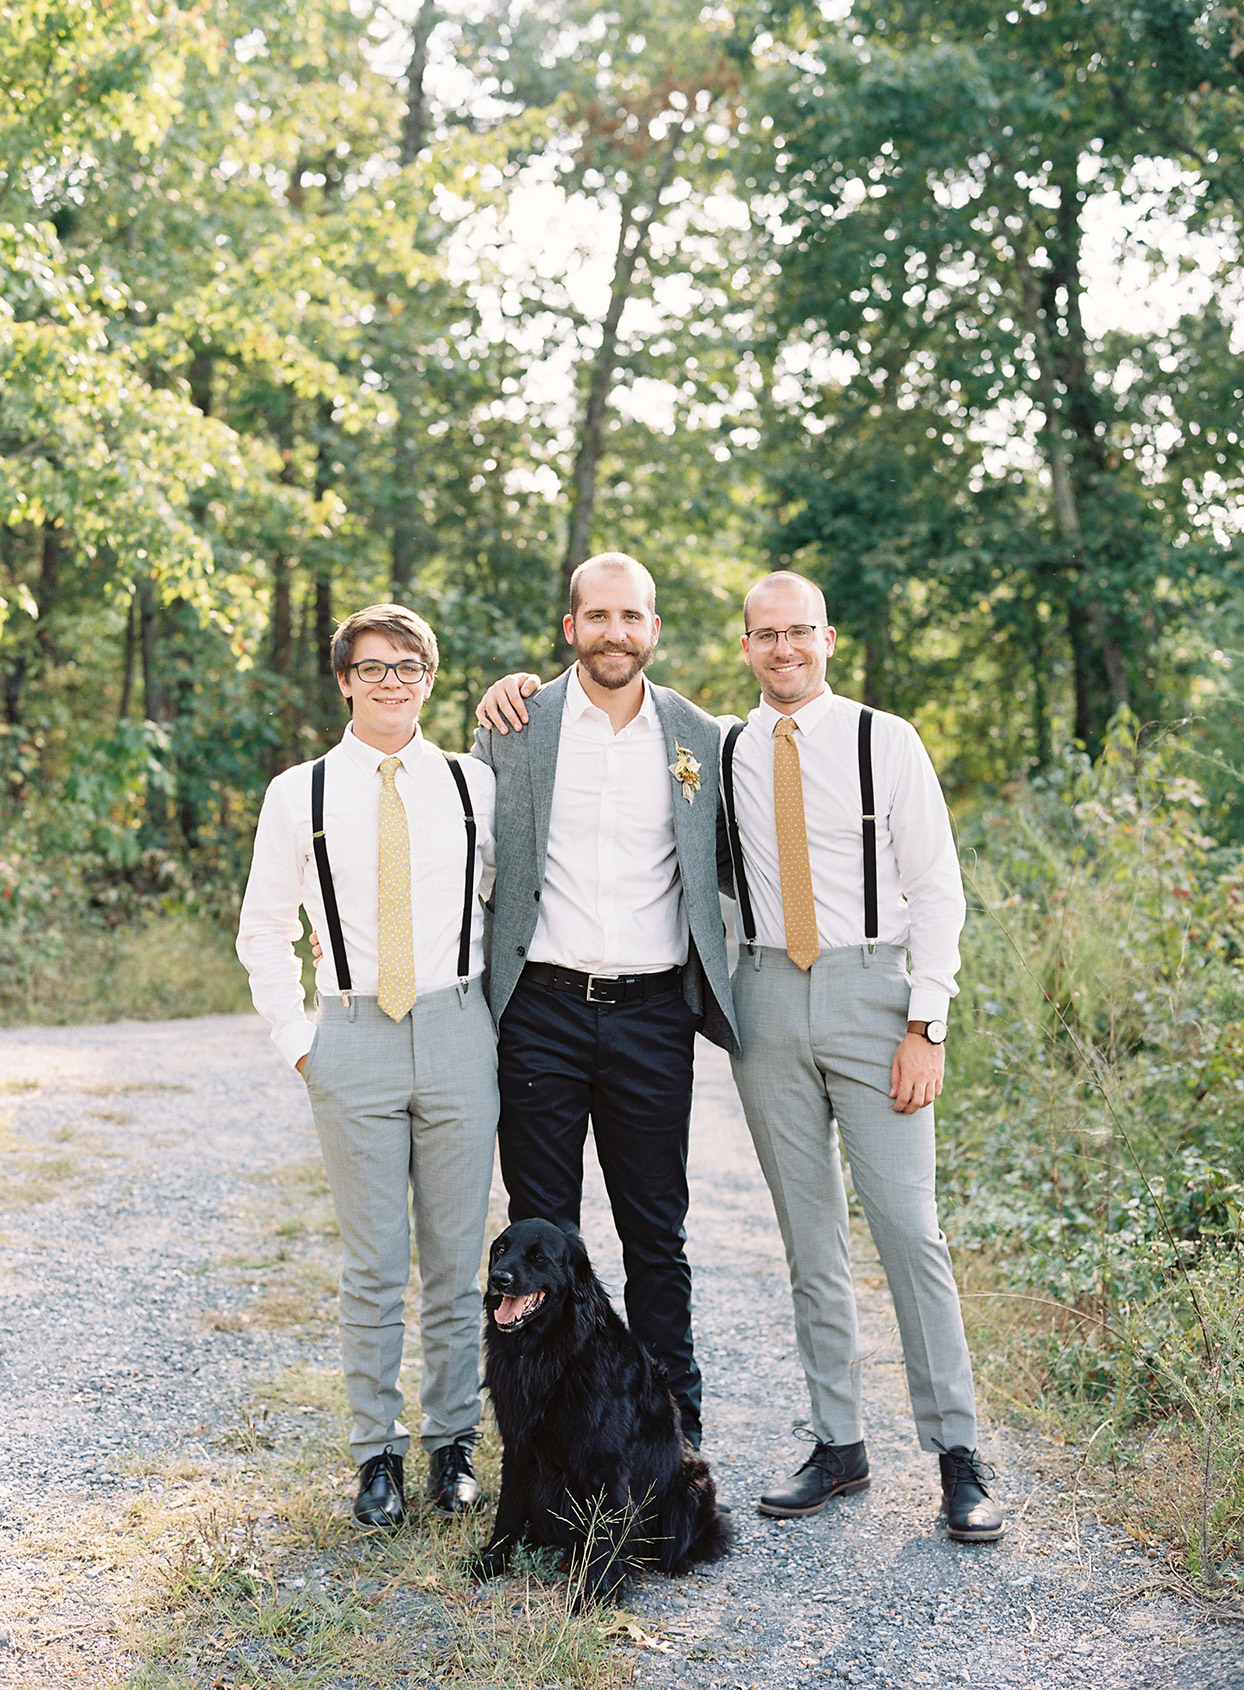 groom standing with two groomsmen and dog